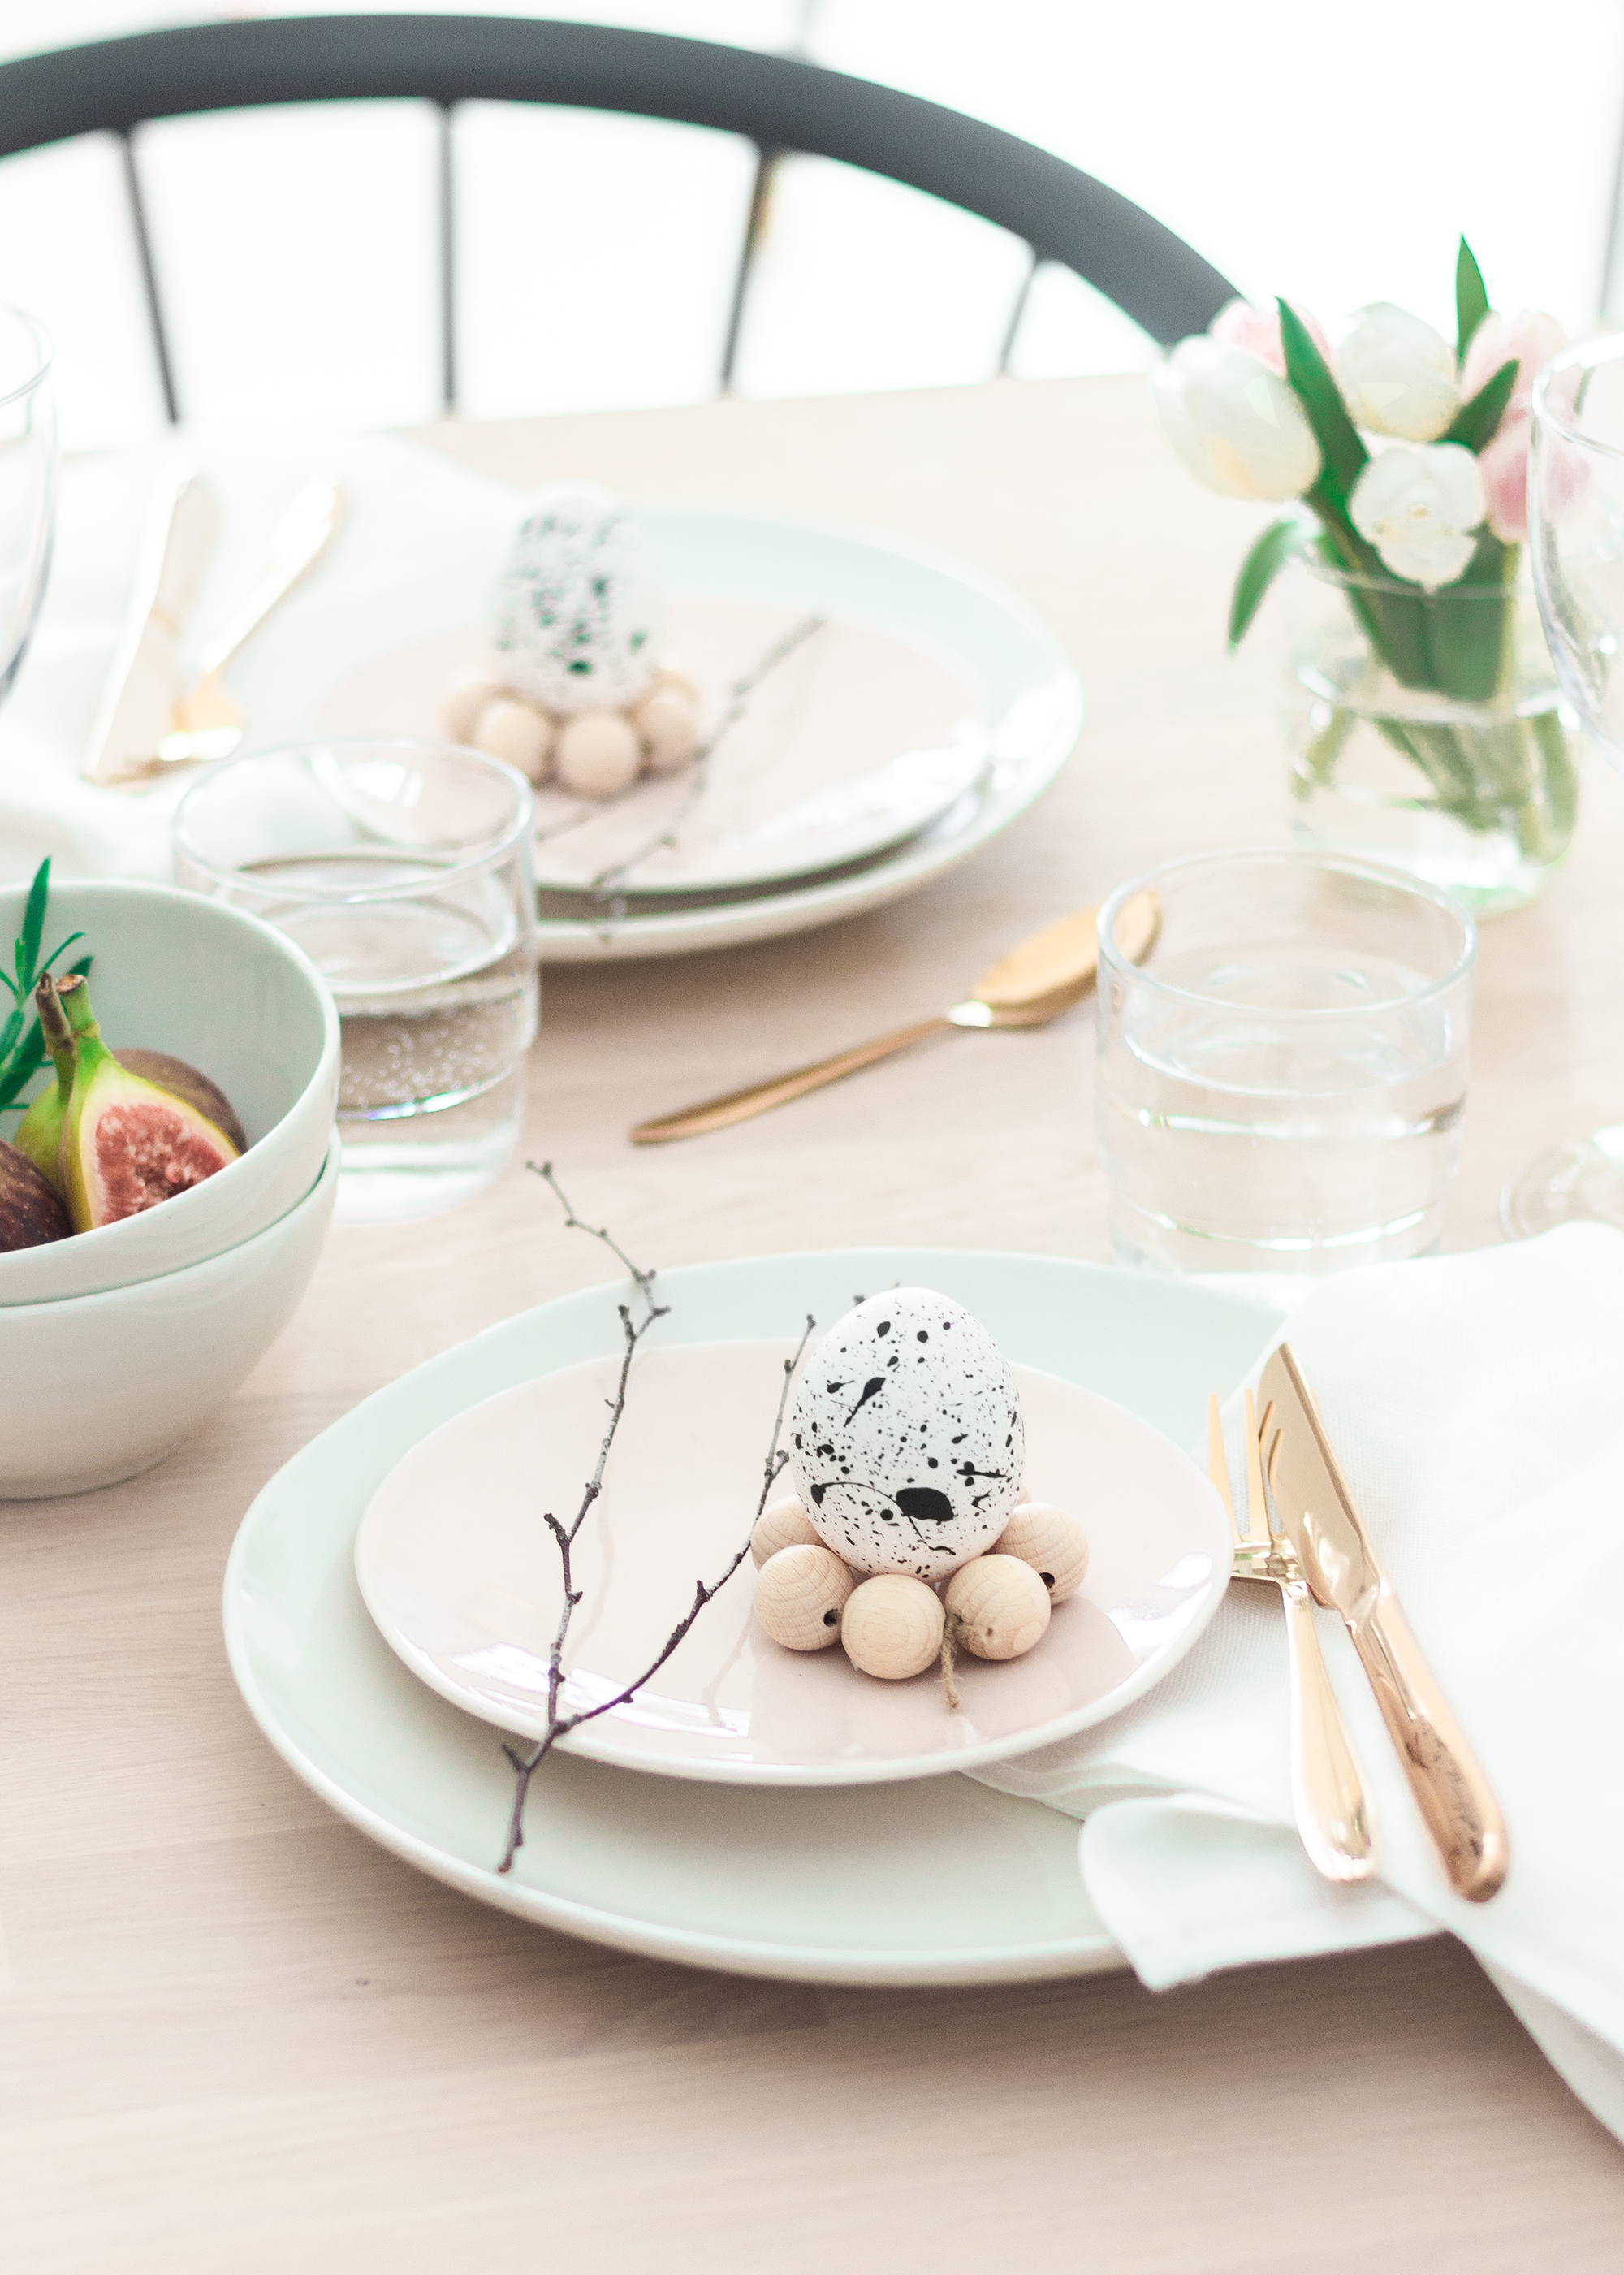 Påskdukning | Easter table scape | Skandinavisk dukning | Minimalist table setting | Scandi decor | By Sandramaria | Sandramarias.com